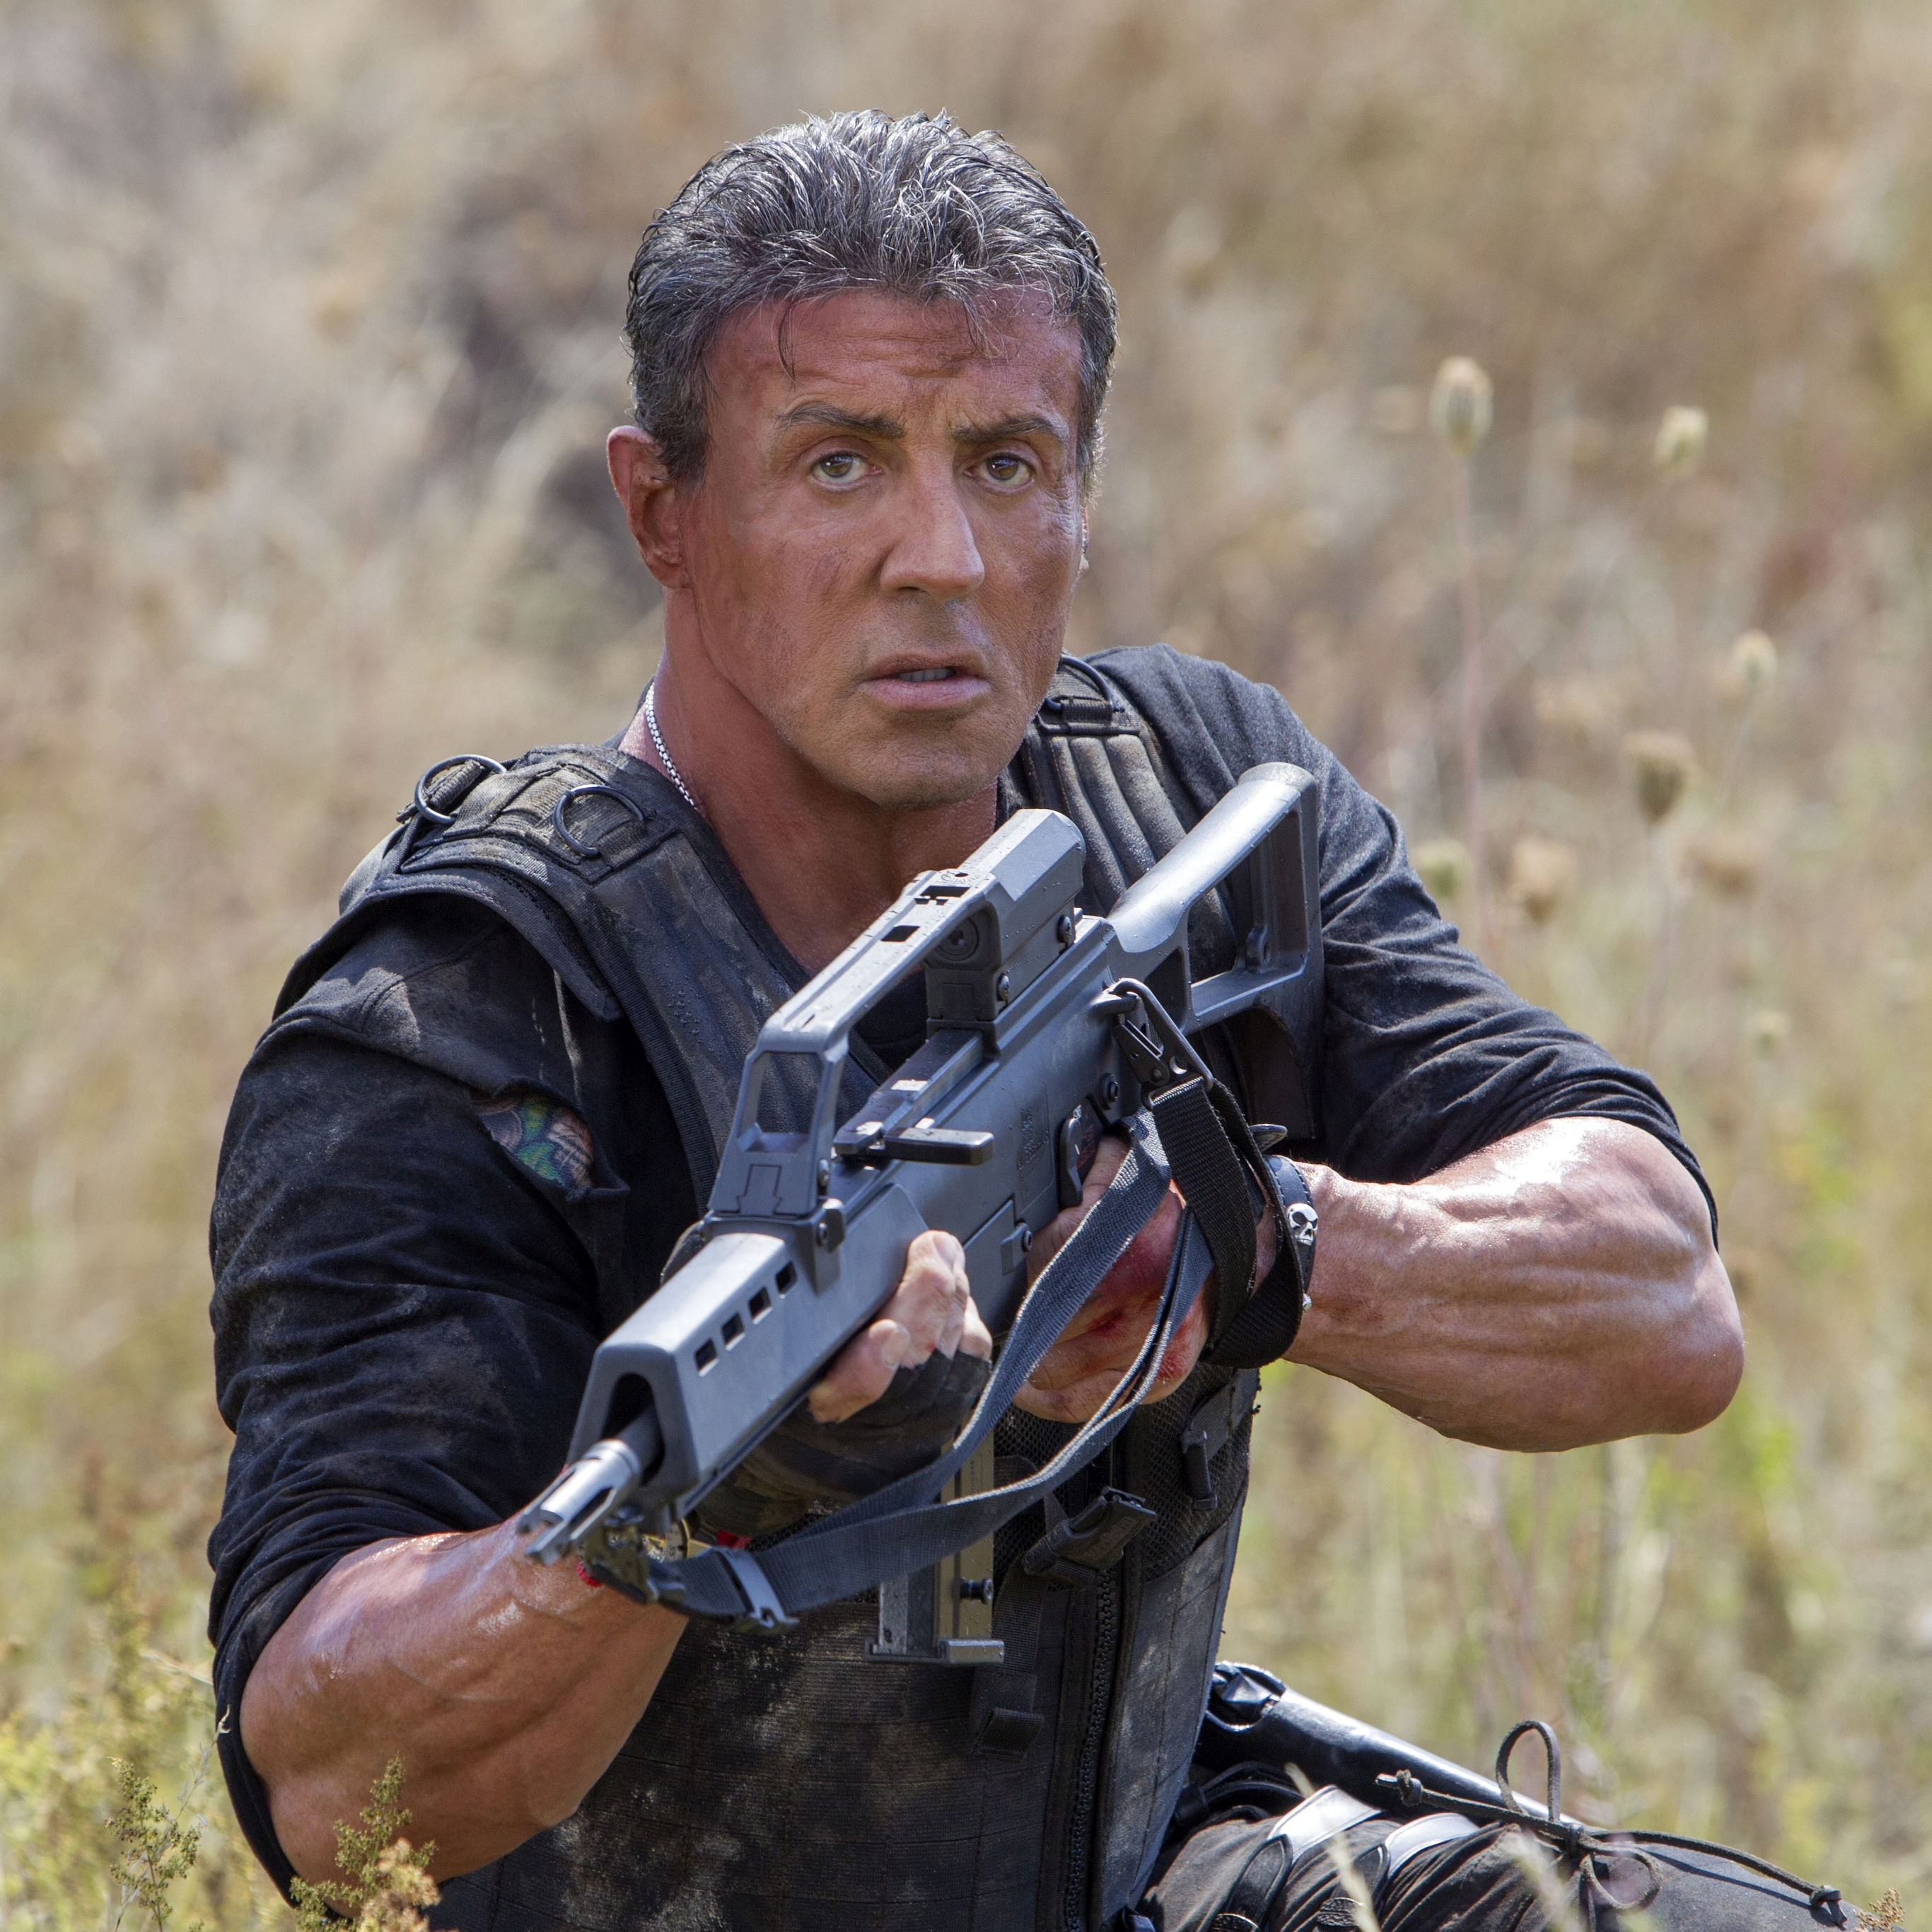 movie/the expendables 3 (2732x2732) wallpaper id: 637413 - mobile abyss